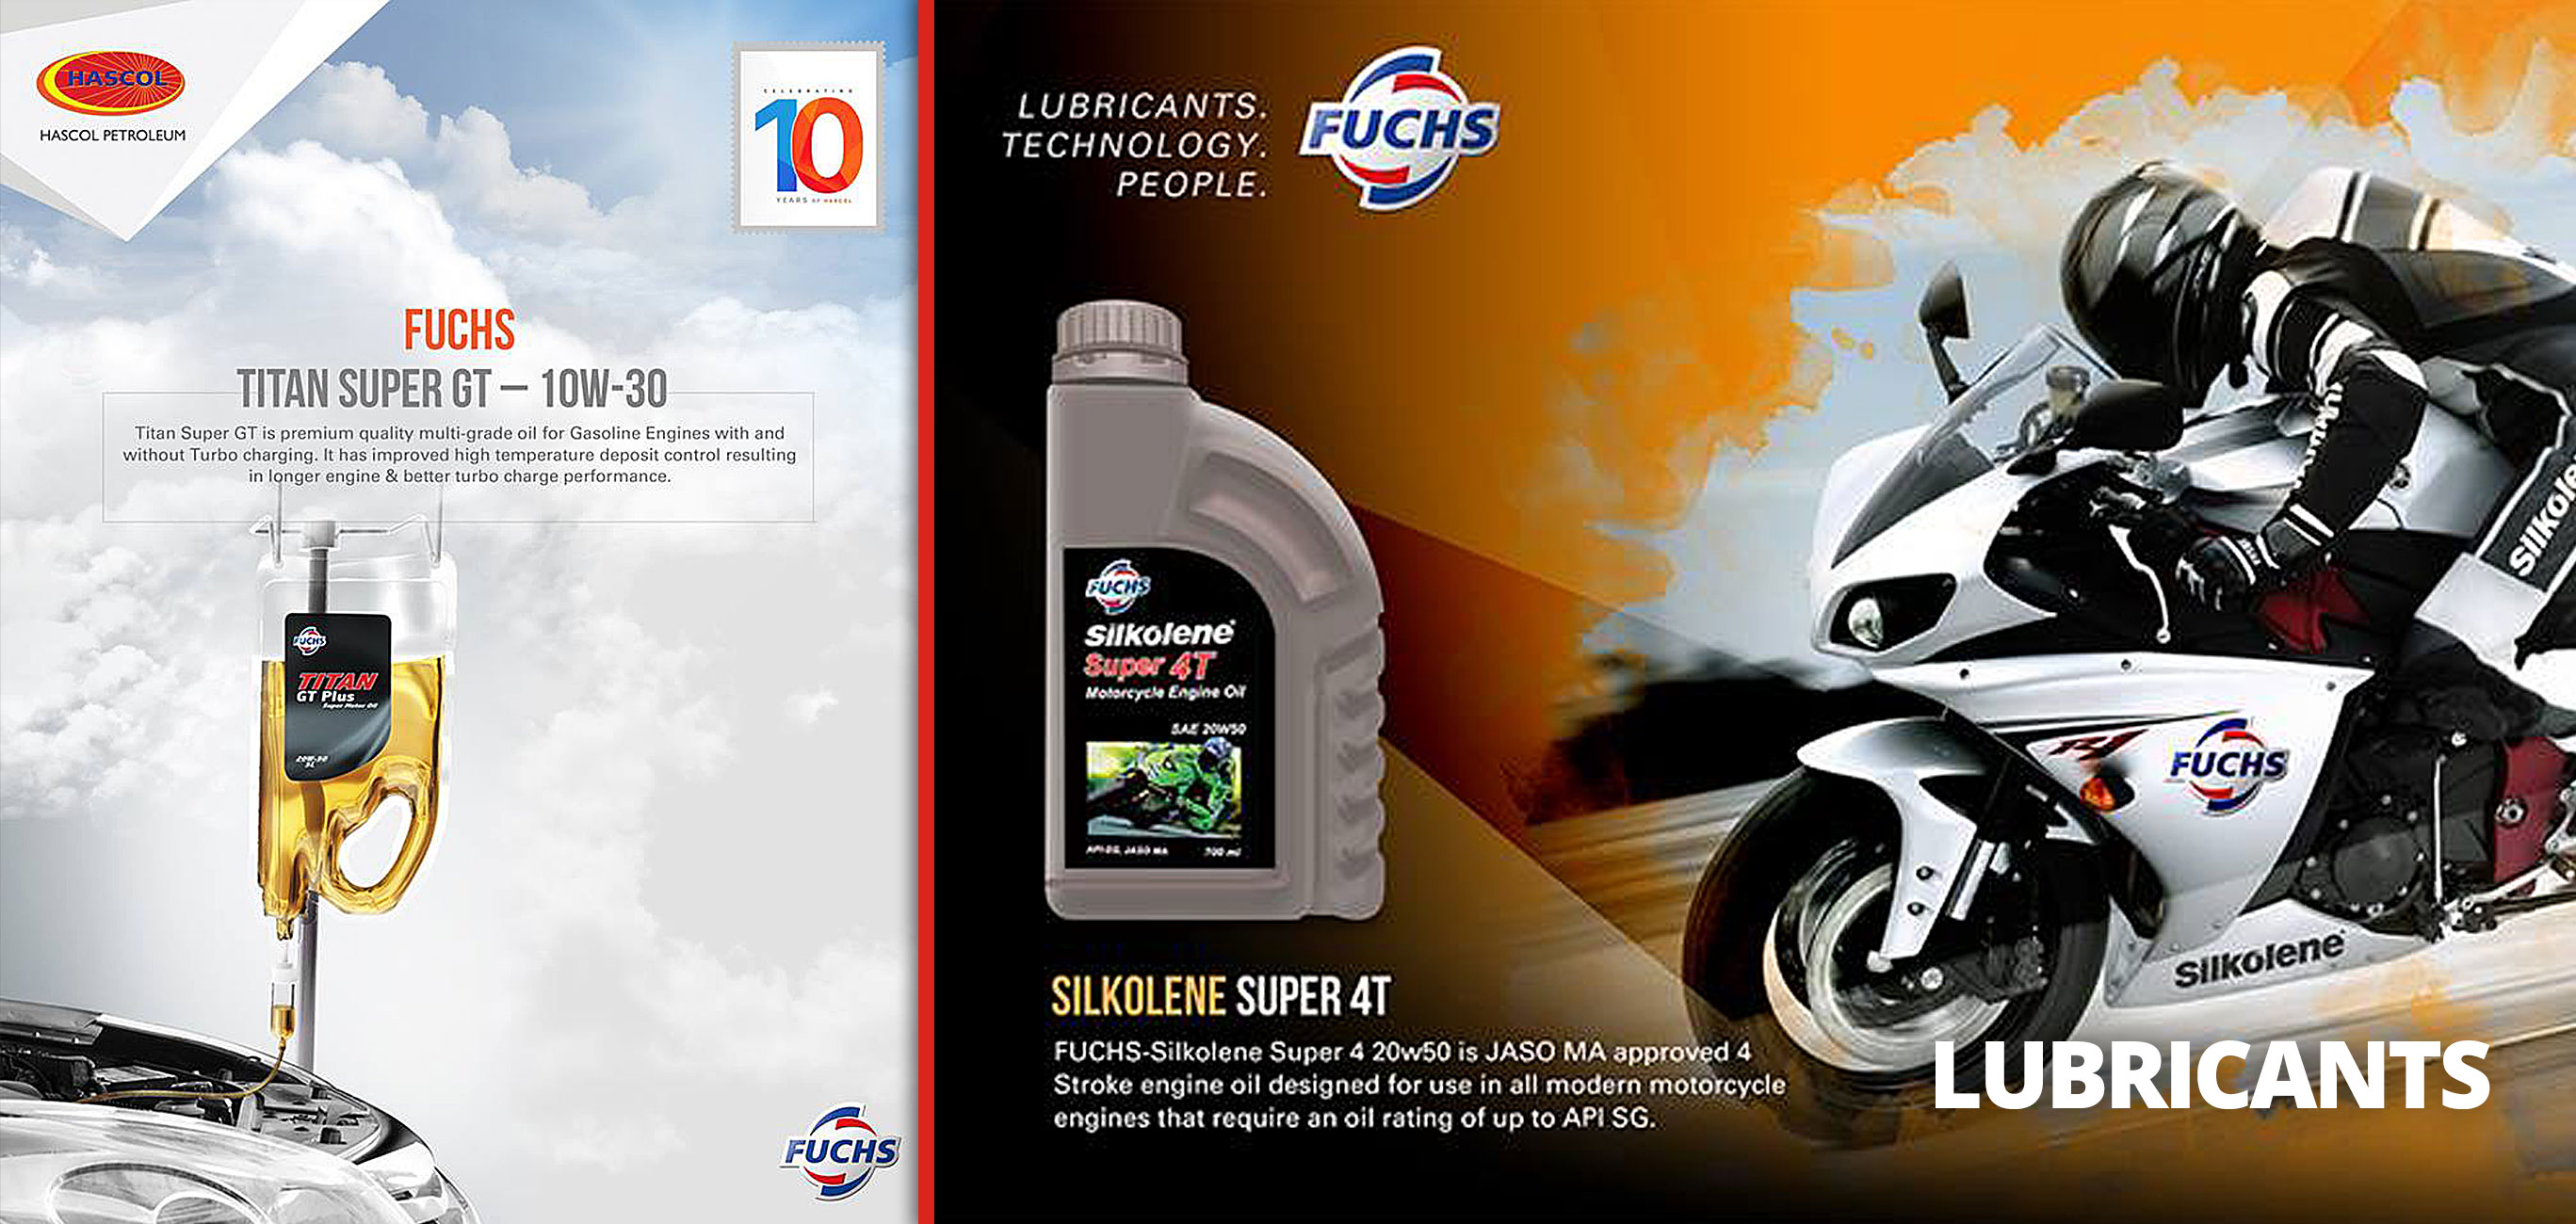 lubricants hascol petroleum limited